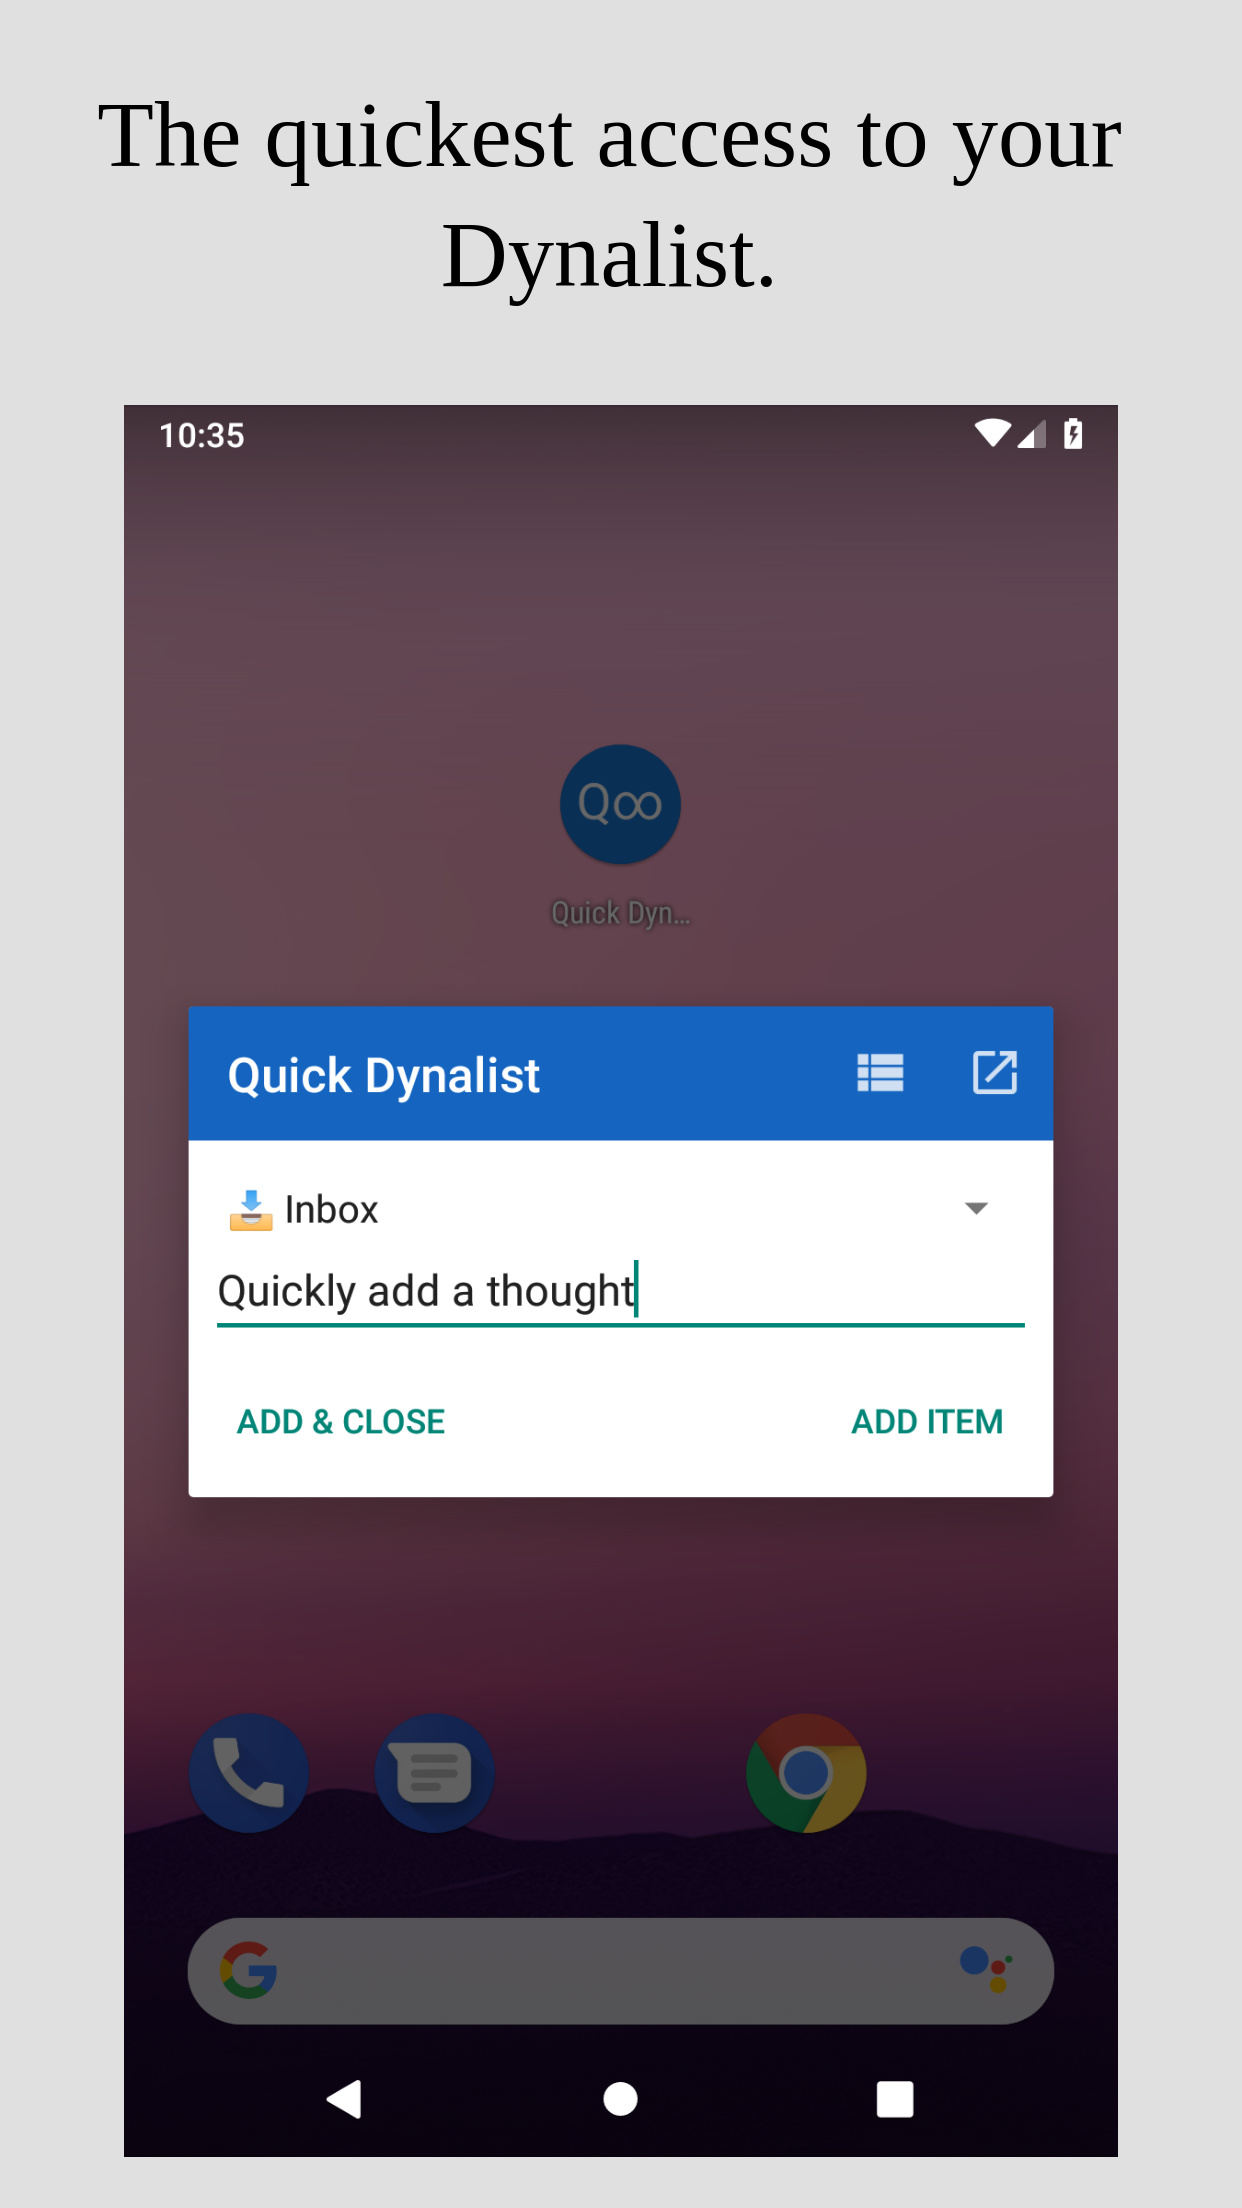 Quick Dynalist - The native Android app for Dynalist